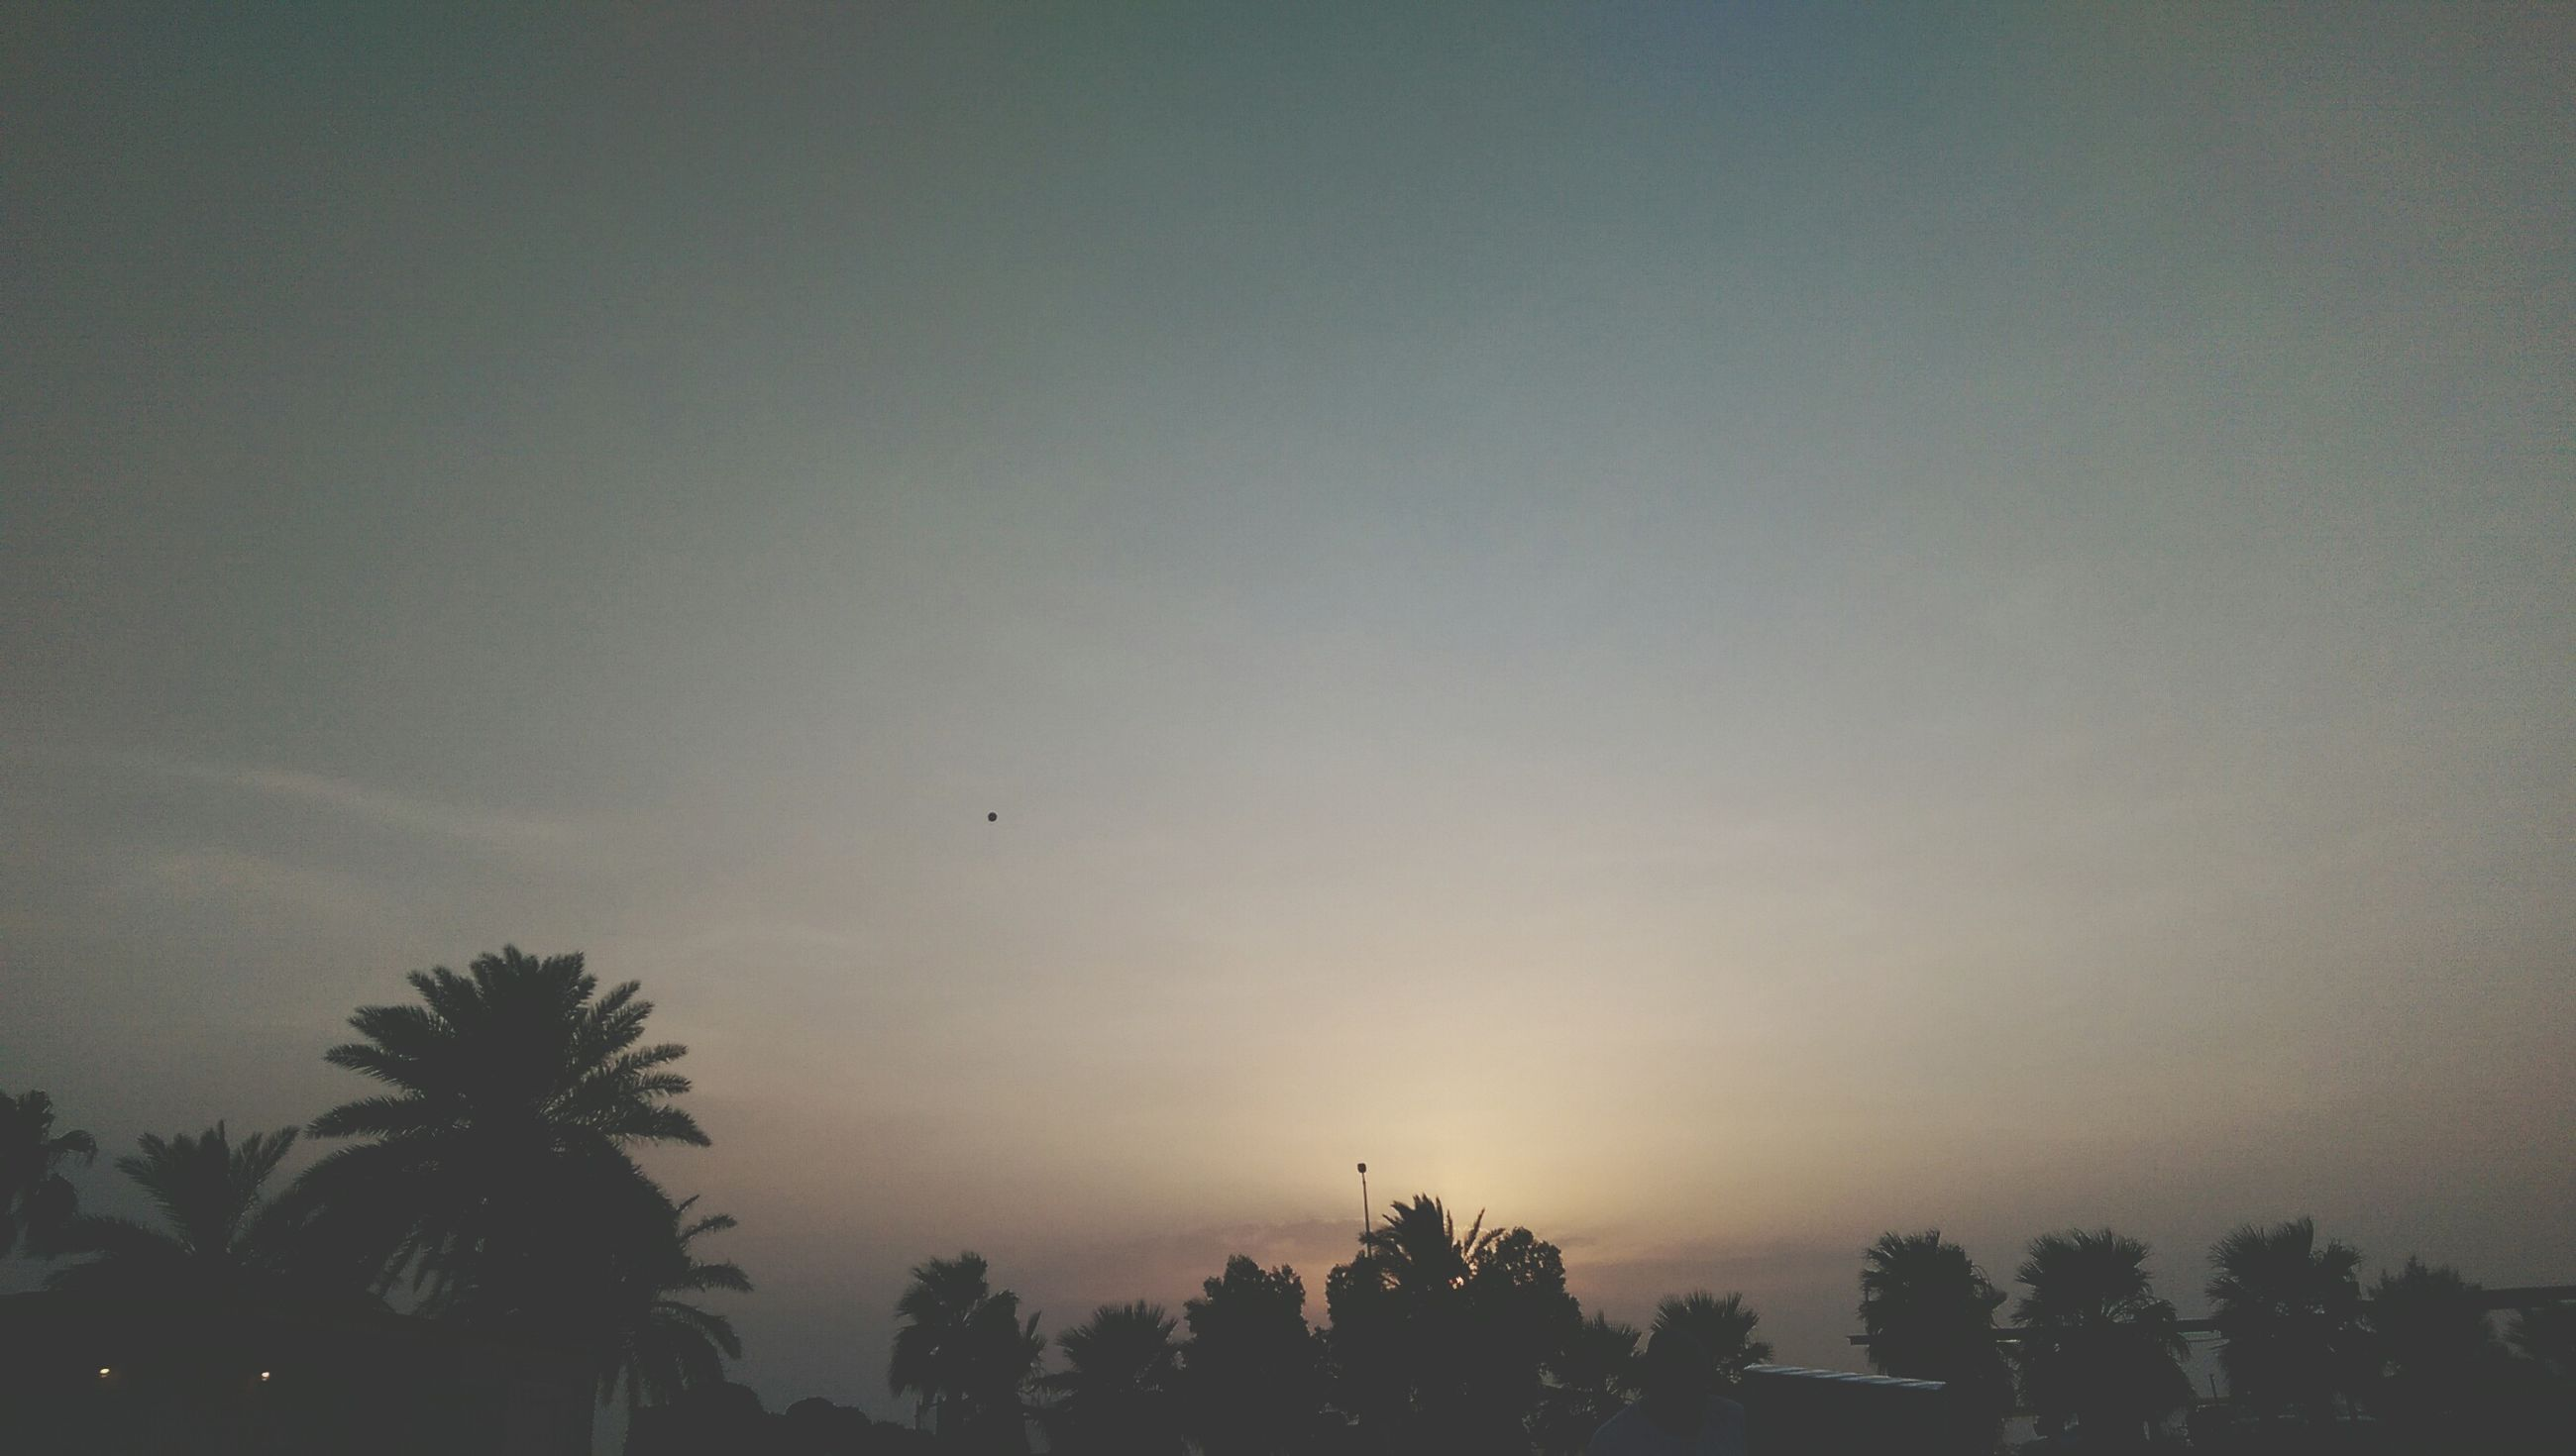 silhouette, tree, sunset, sky, low angle view, bird, flying, nature, beauty in nature, copy space, tranquility, dusk, scenics, tranquil scene, palm tree, growth, clear sky, outdoors, no people, outline